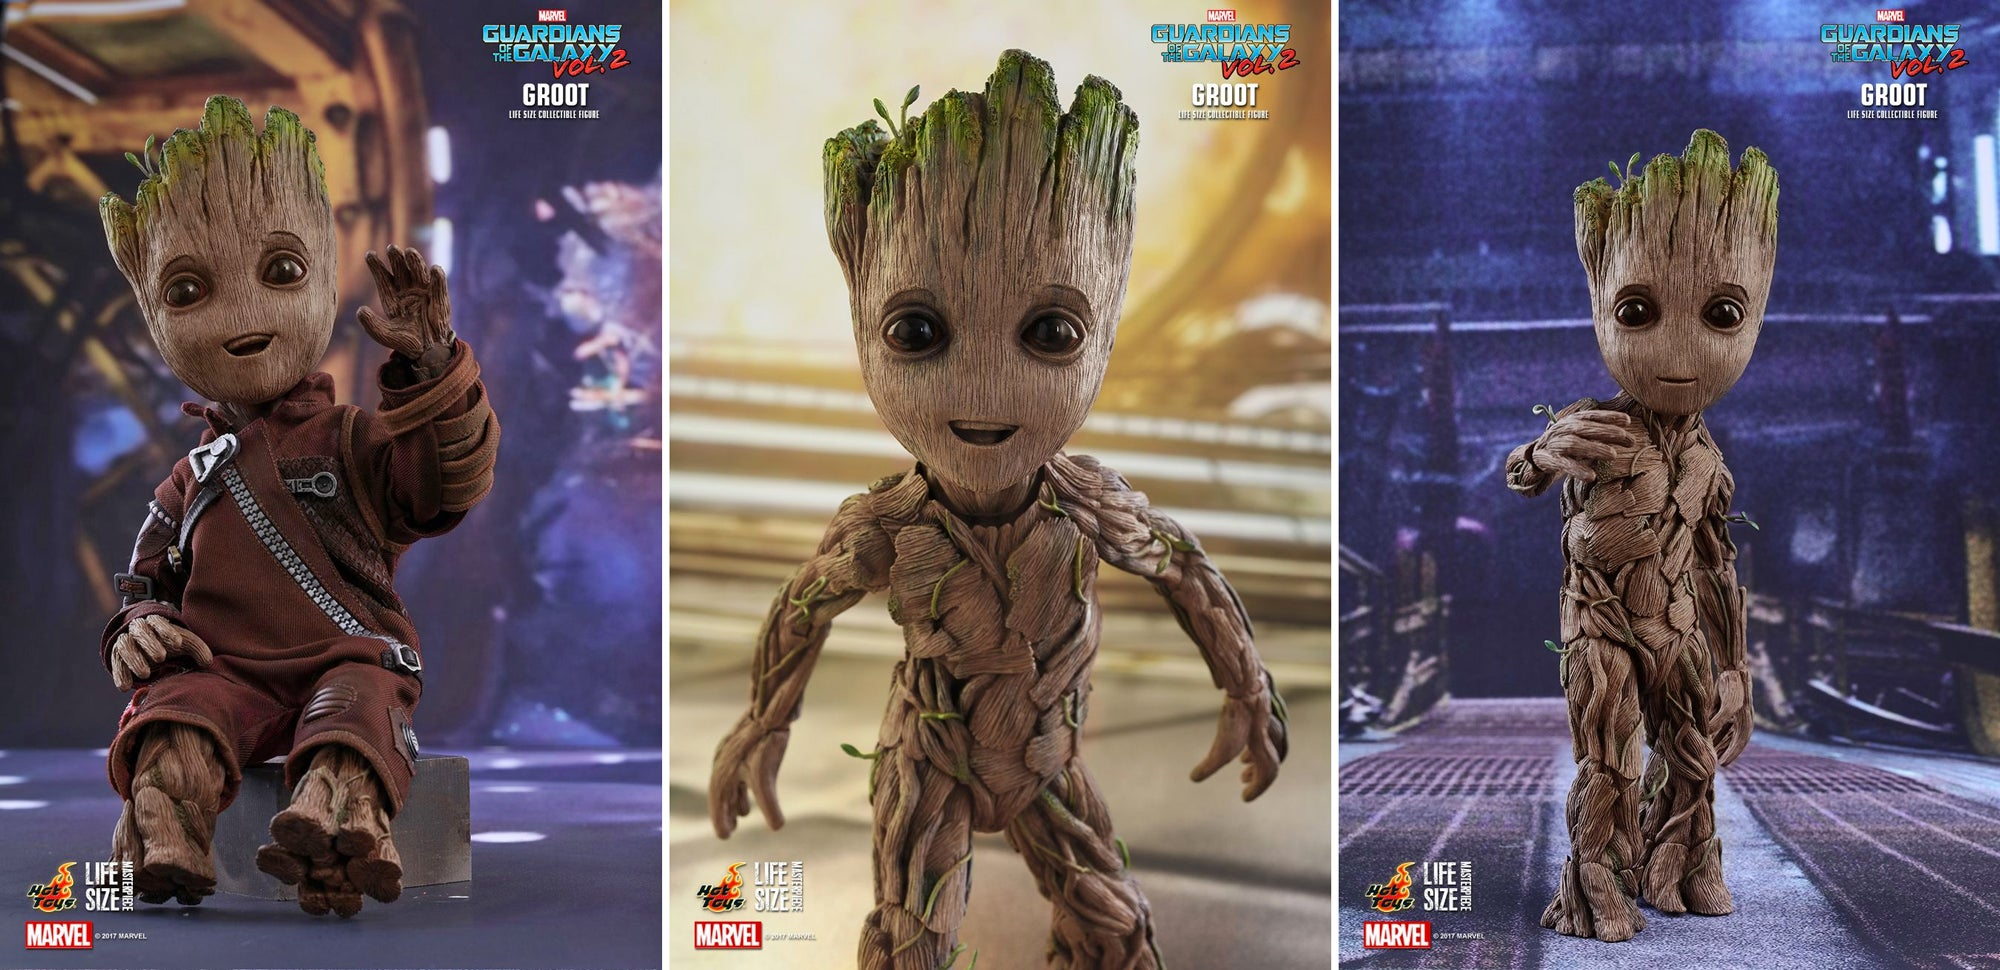 e Great Groot And e Creepy e In The Best Toys We ve Seen